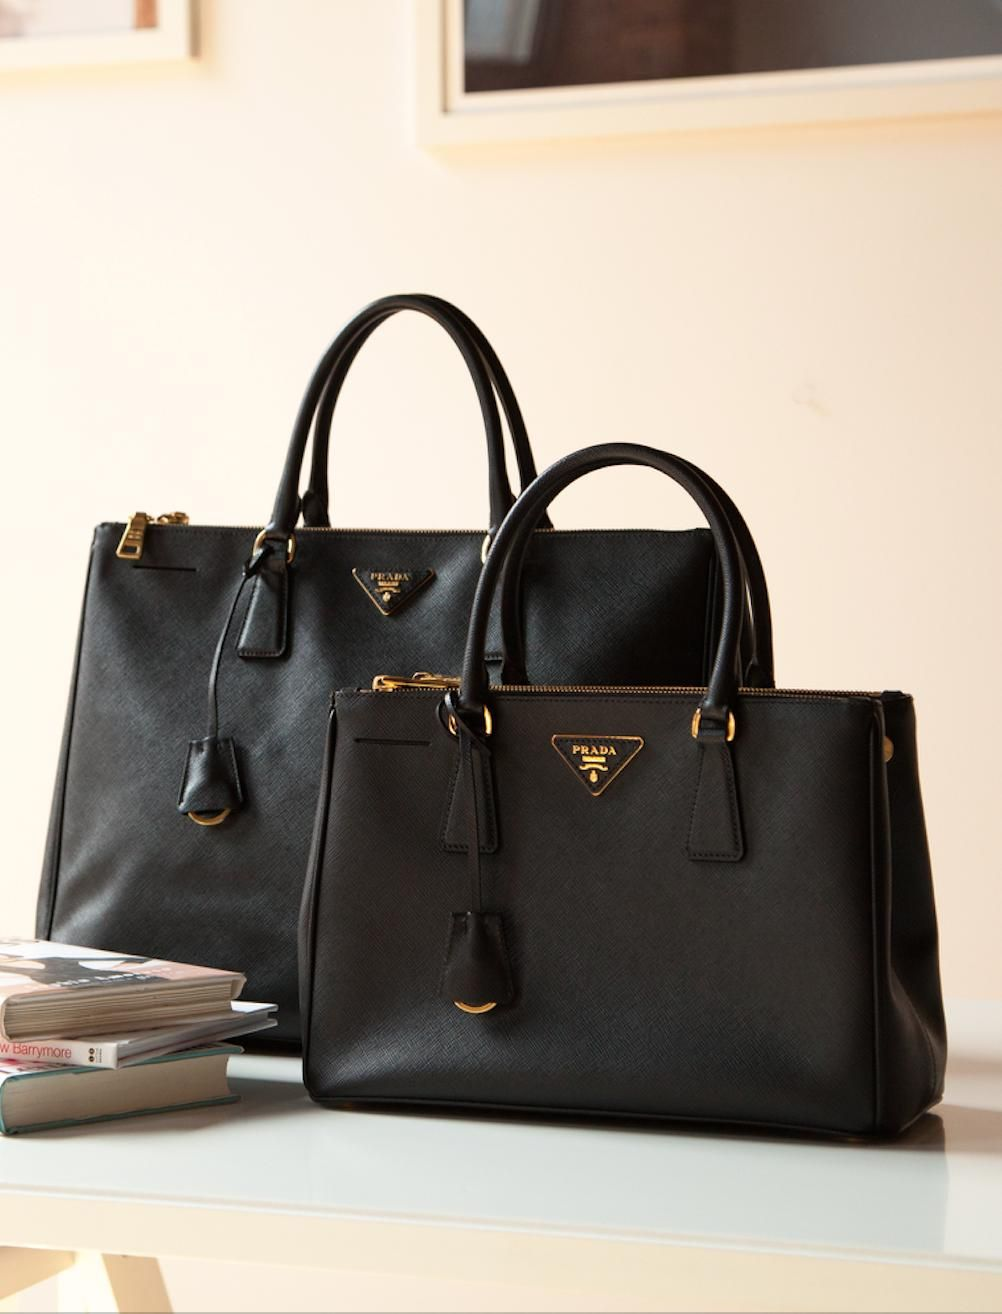 7e994e7c4e Large and small black Prada tote in saffiano leather.